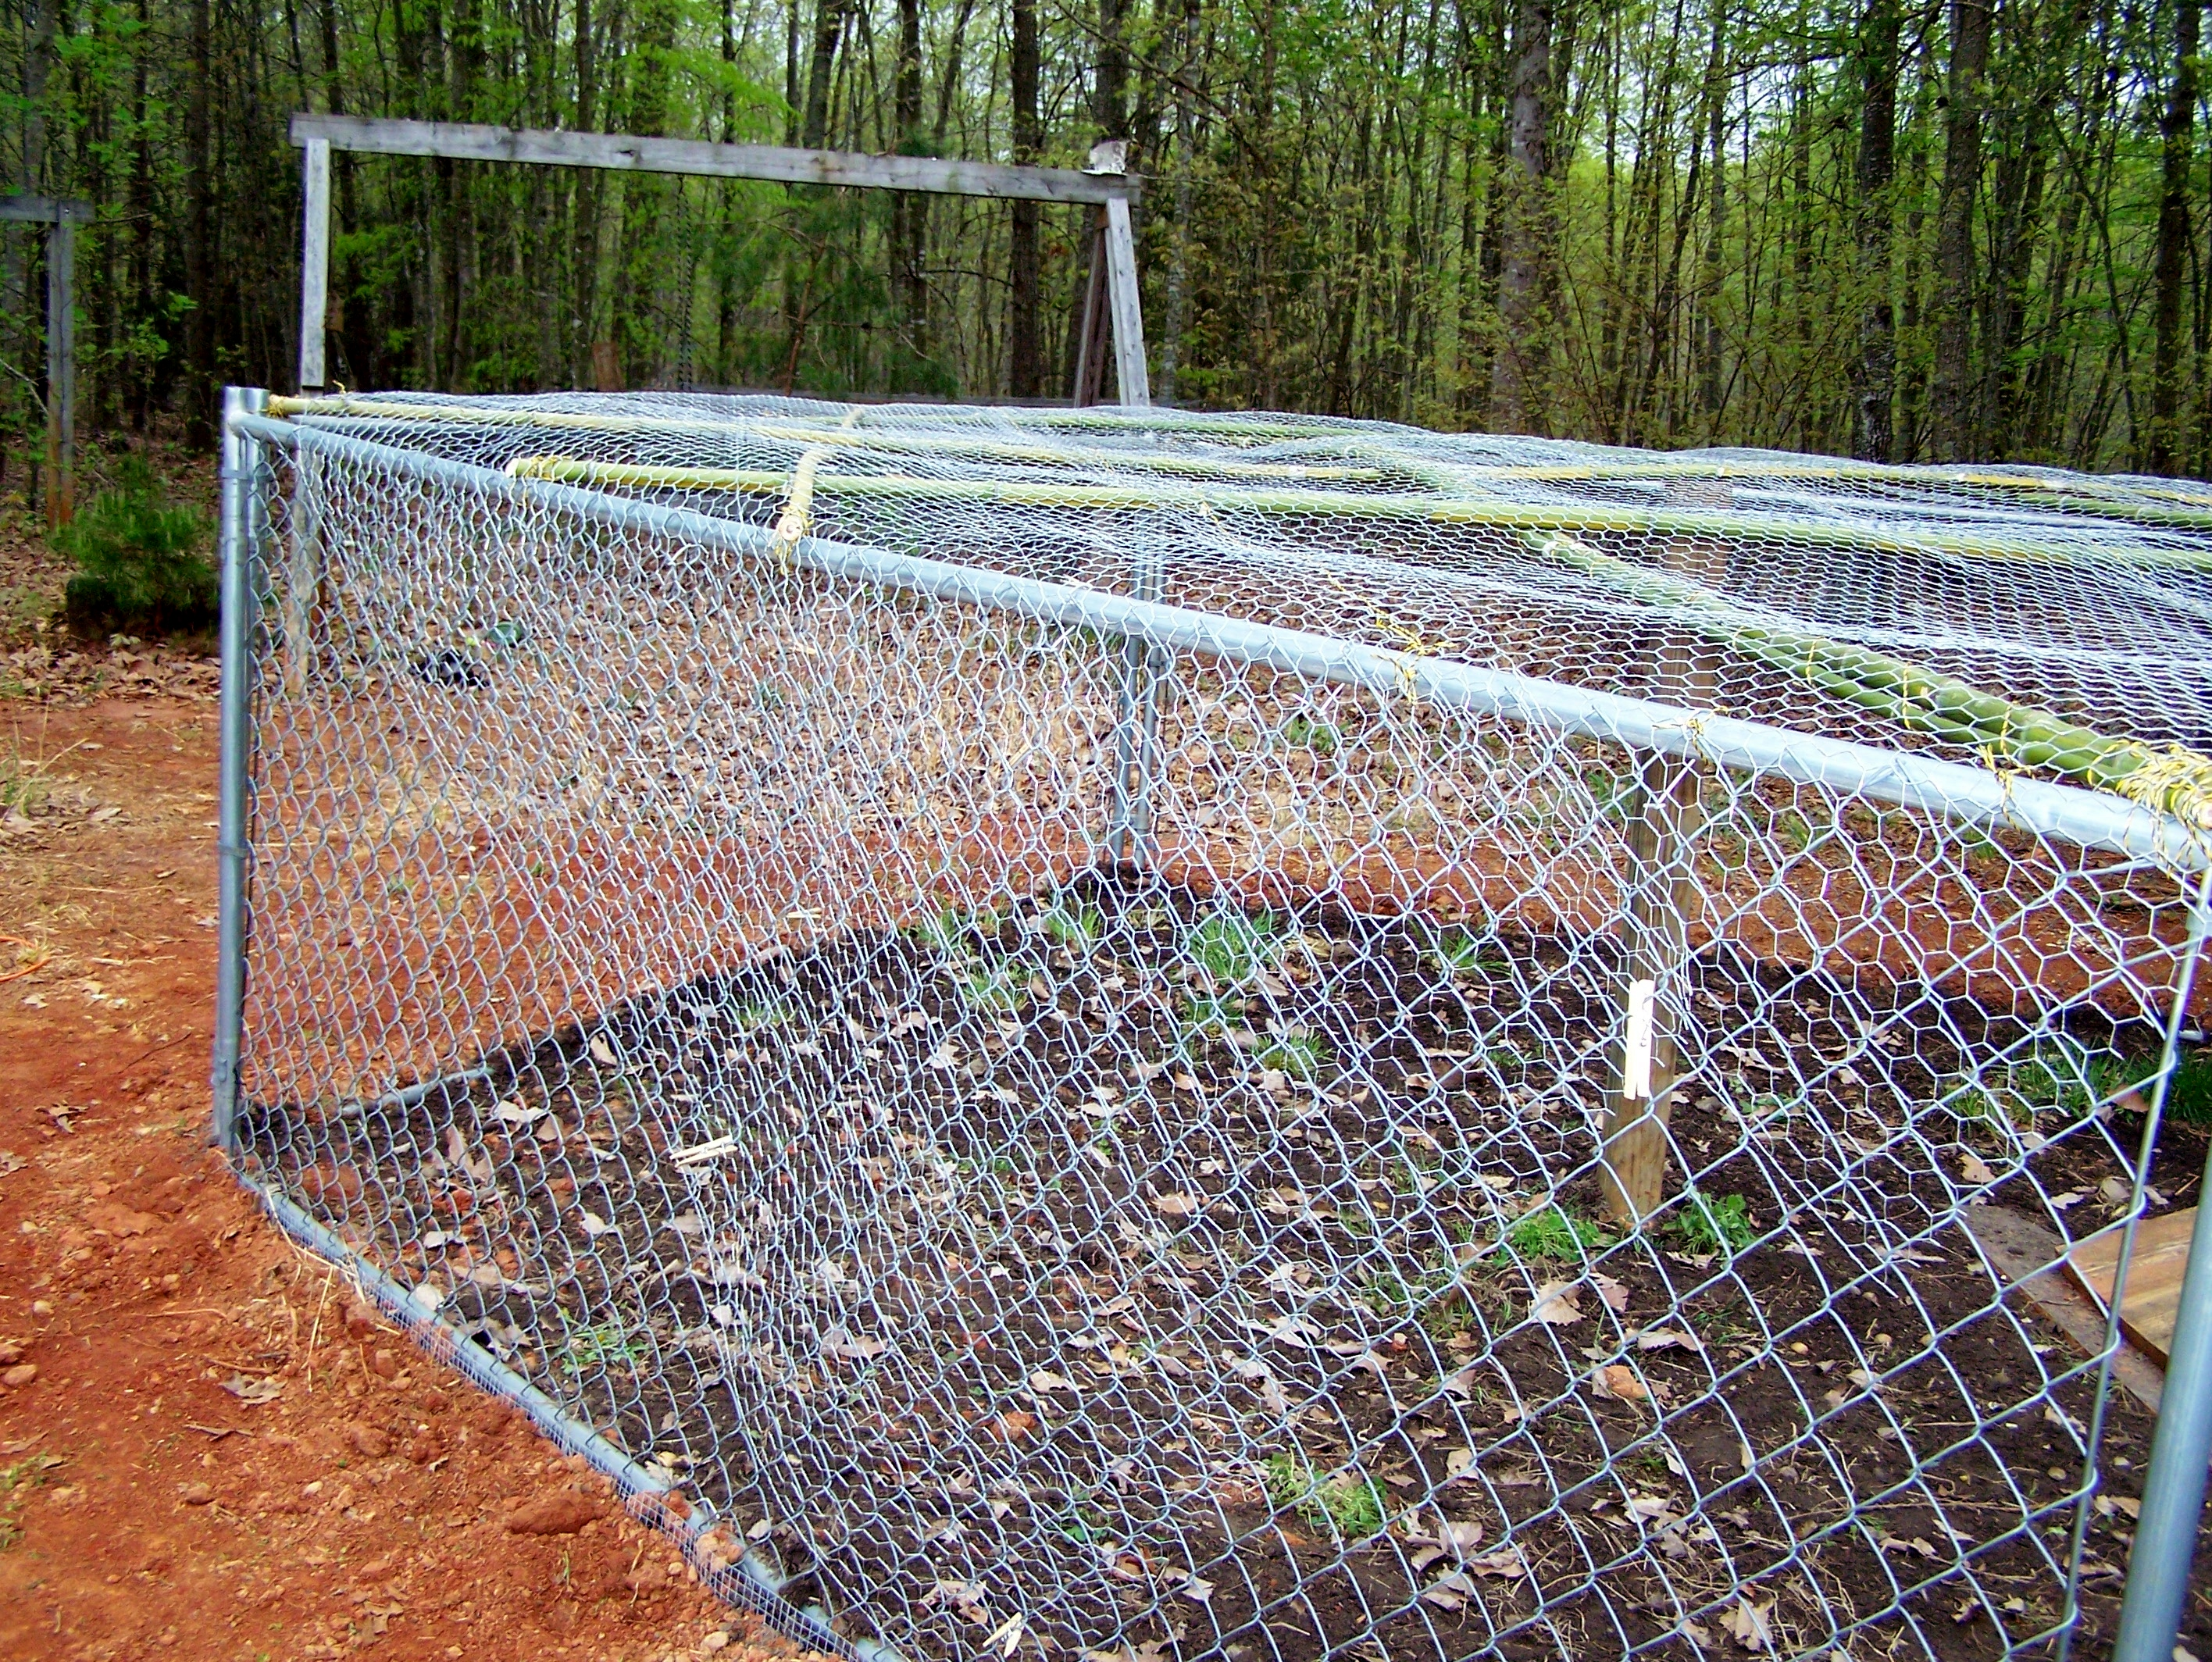 Chicken wire | My Life In The Country